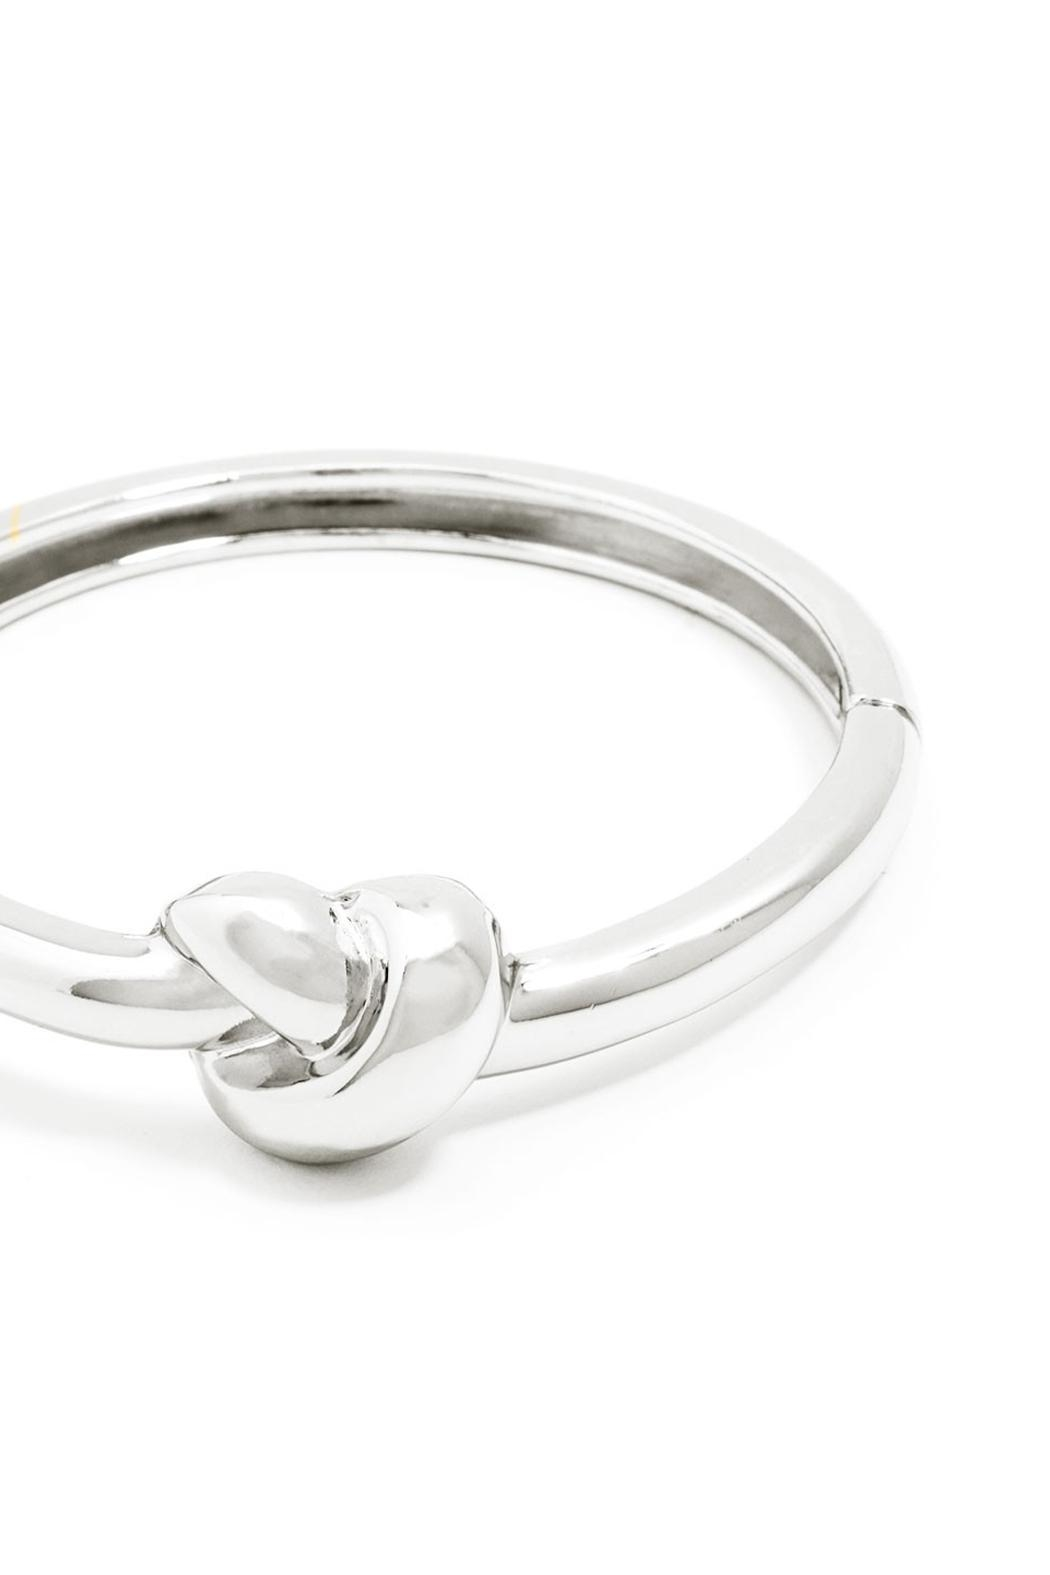 Wild Lilies Jewelry  Knot Bangle Bracelet - Front Full Image